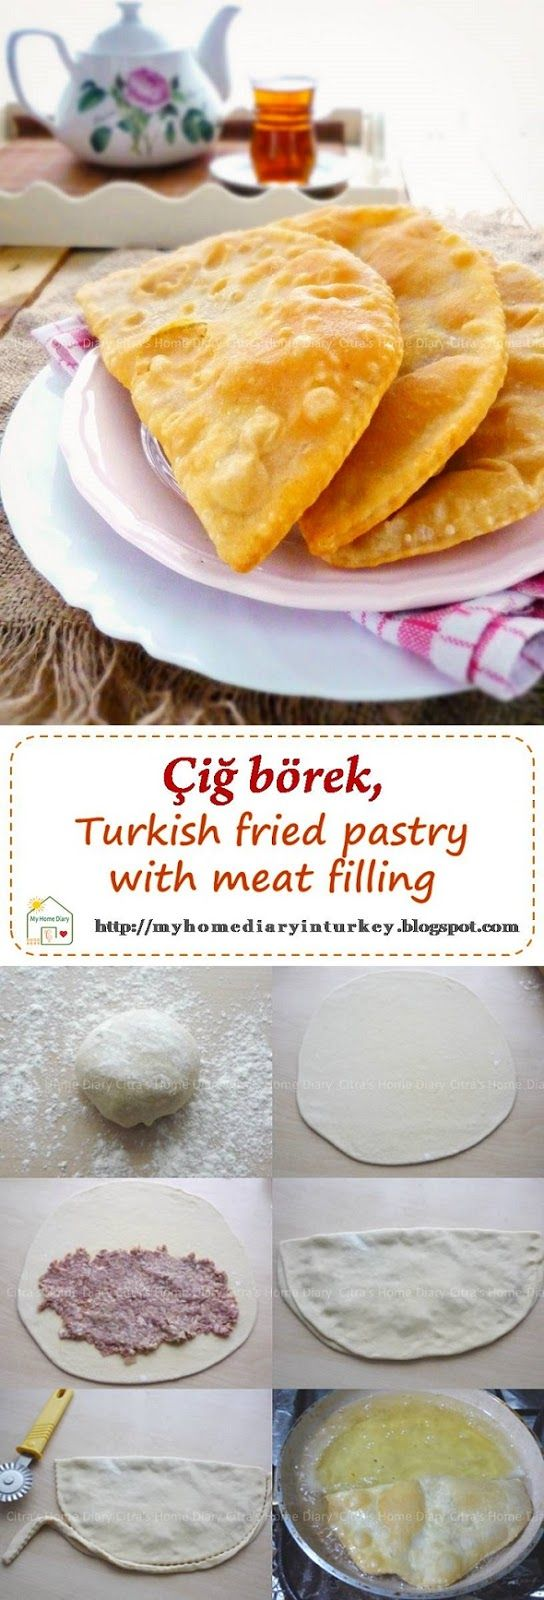 Çiğ börek (Turkish Raw meat pastry). And since börek is almost everyday meal in our house, today İ am going to share on of our favorite börek called çiğcbörek (read; chee borek). Çiğ means raw, because this börek, filled with raw mincemeat and fried in oil. #börek #burek #borek #cigborek #çiğbörek #turkishfood #meatpastry #turnoverrecipe #breakfast #friedpastry